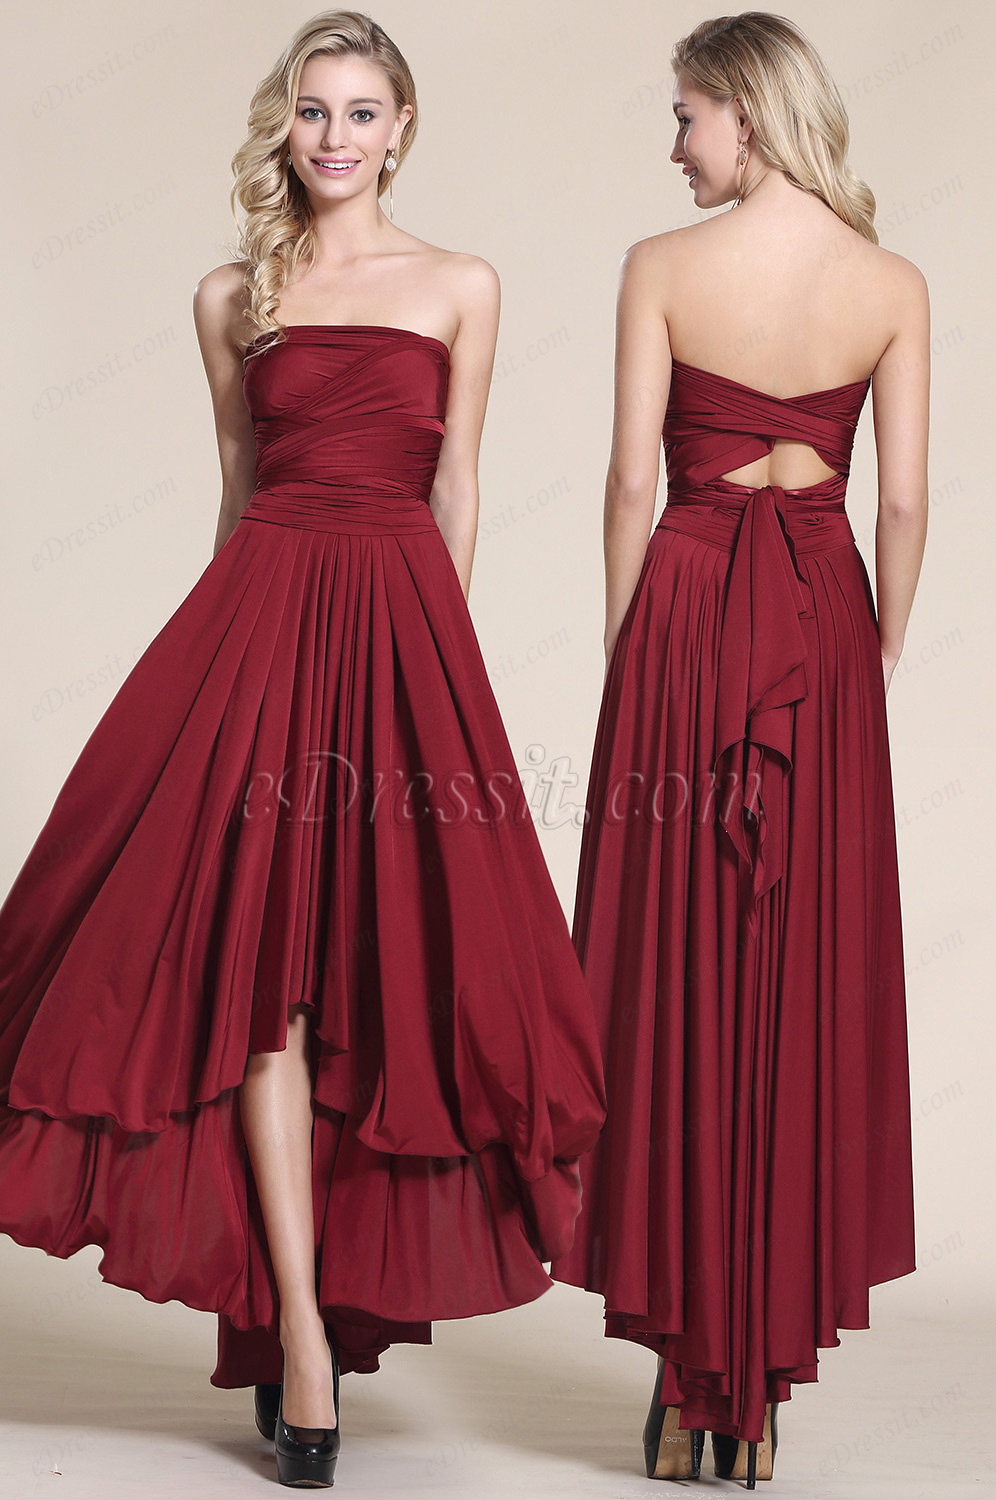 Edressit convertible high low bridesmaid dress prom dress 07154617 ombrellifo Image collections